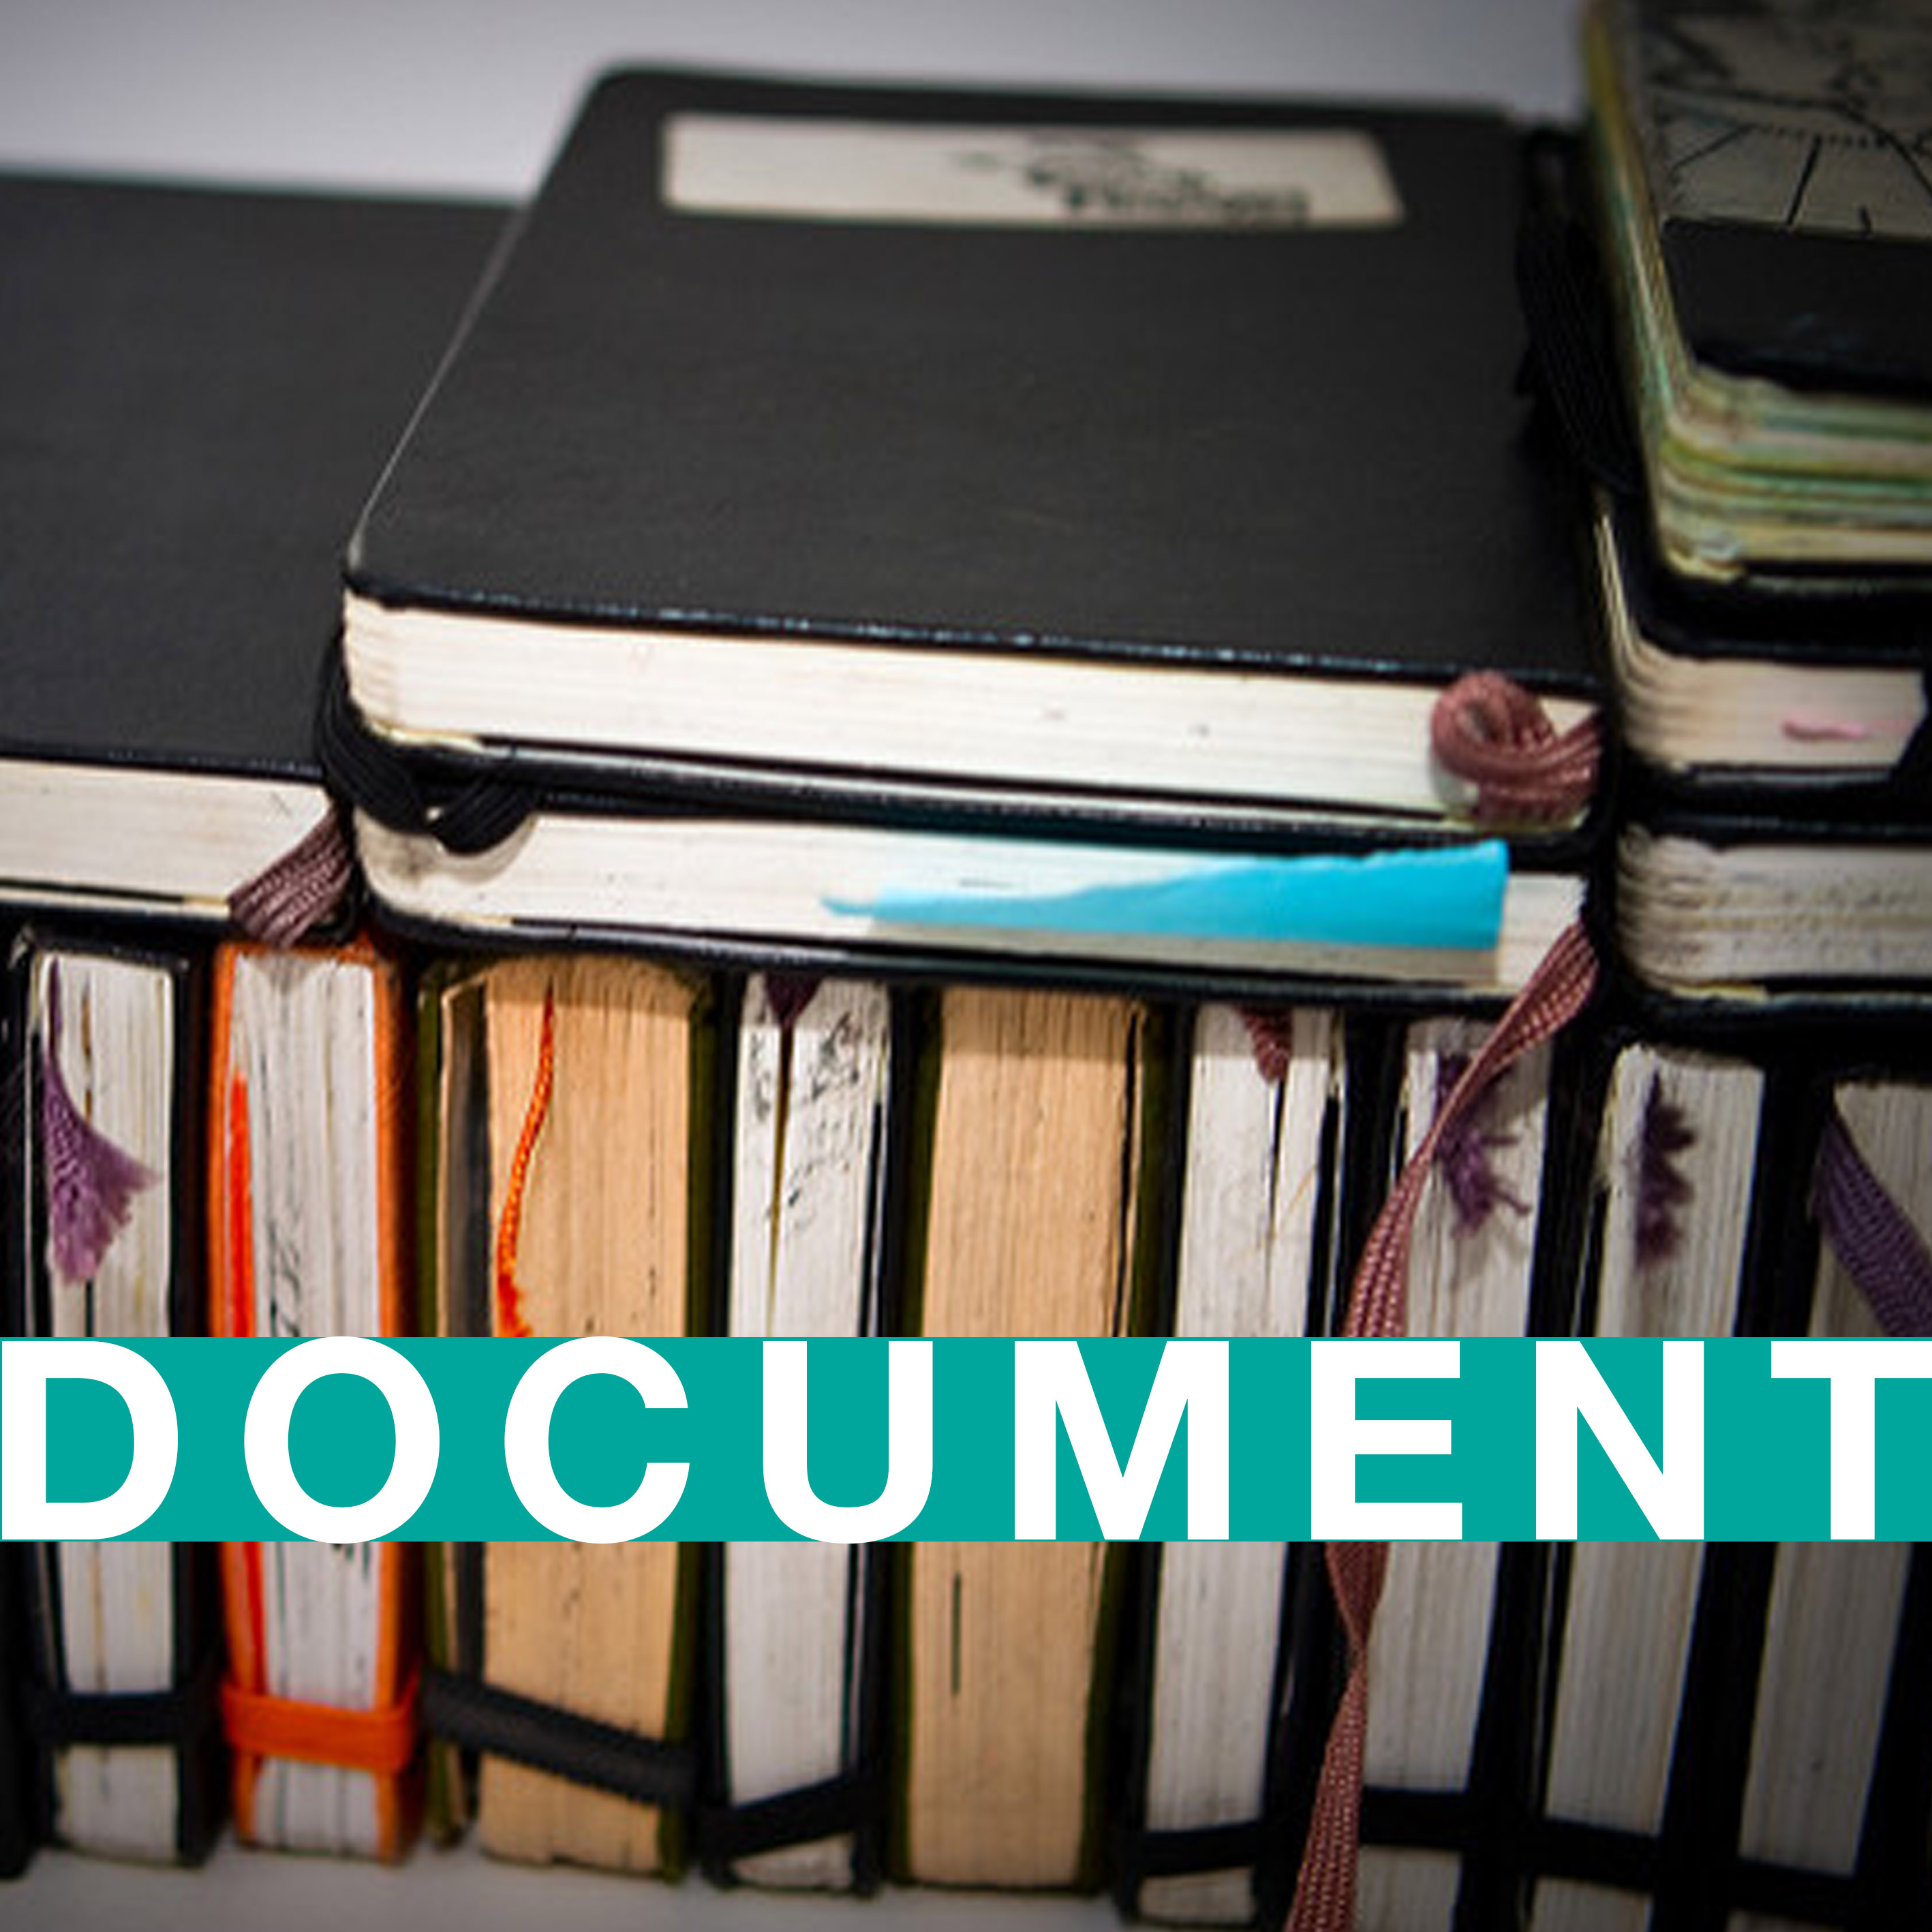 Document: a visual record